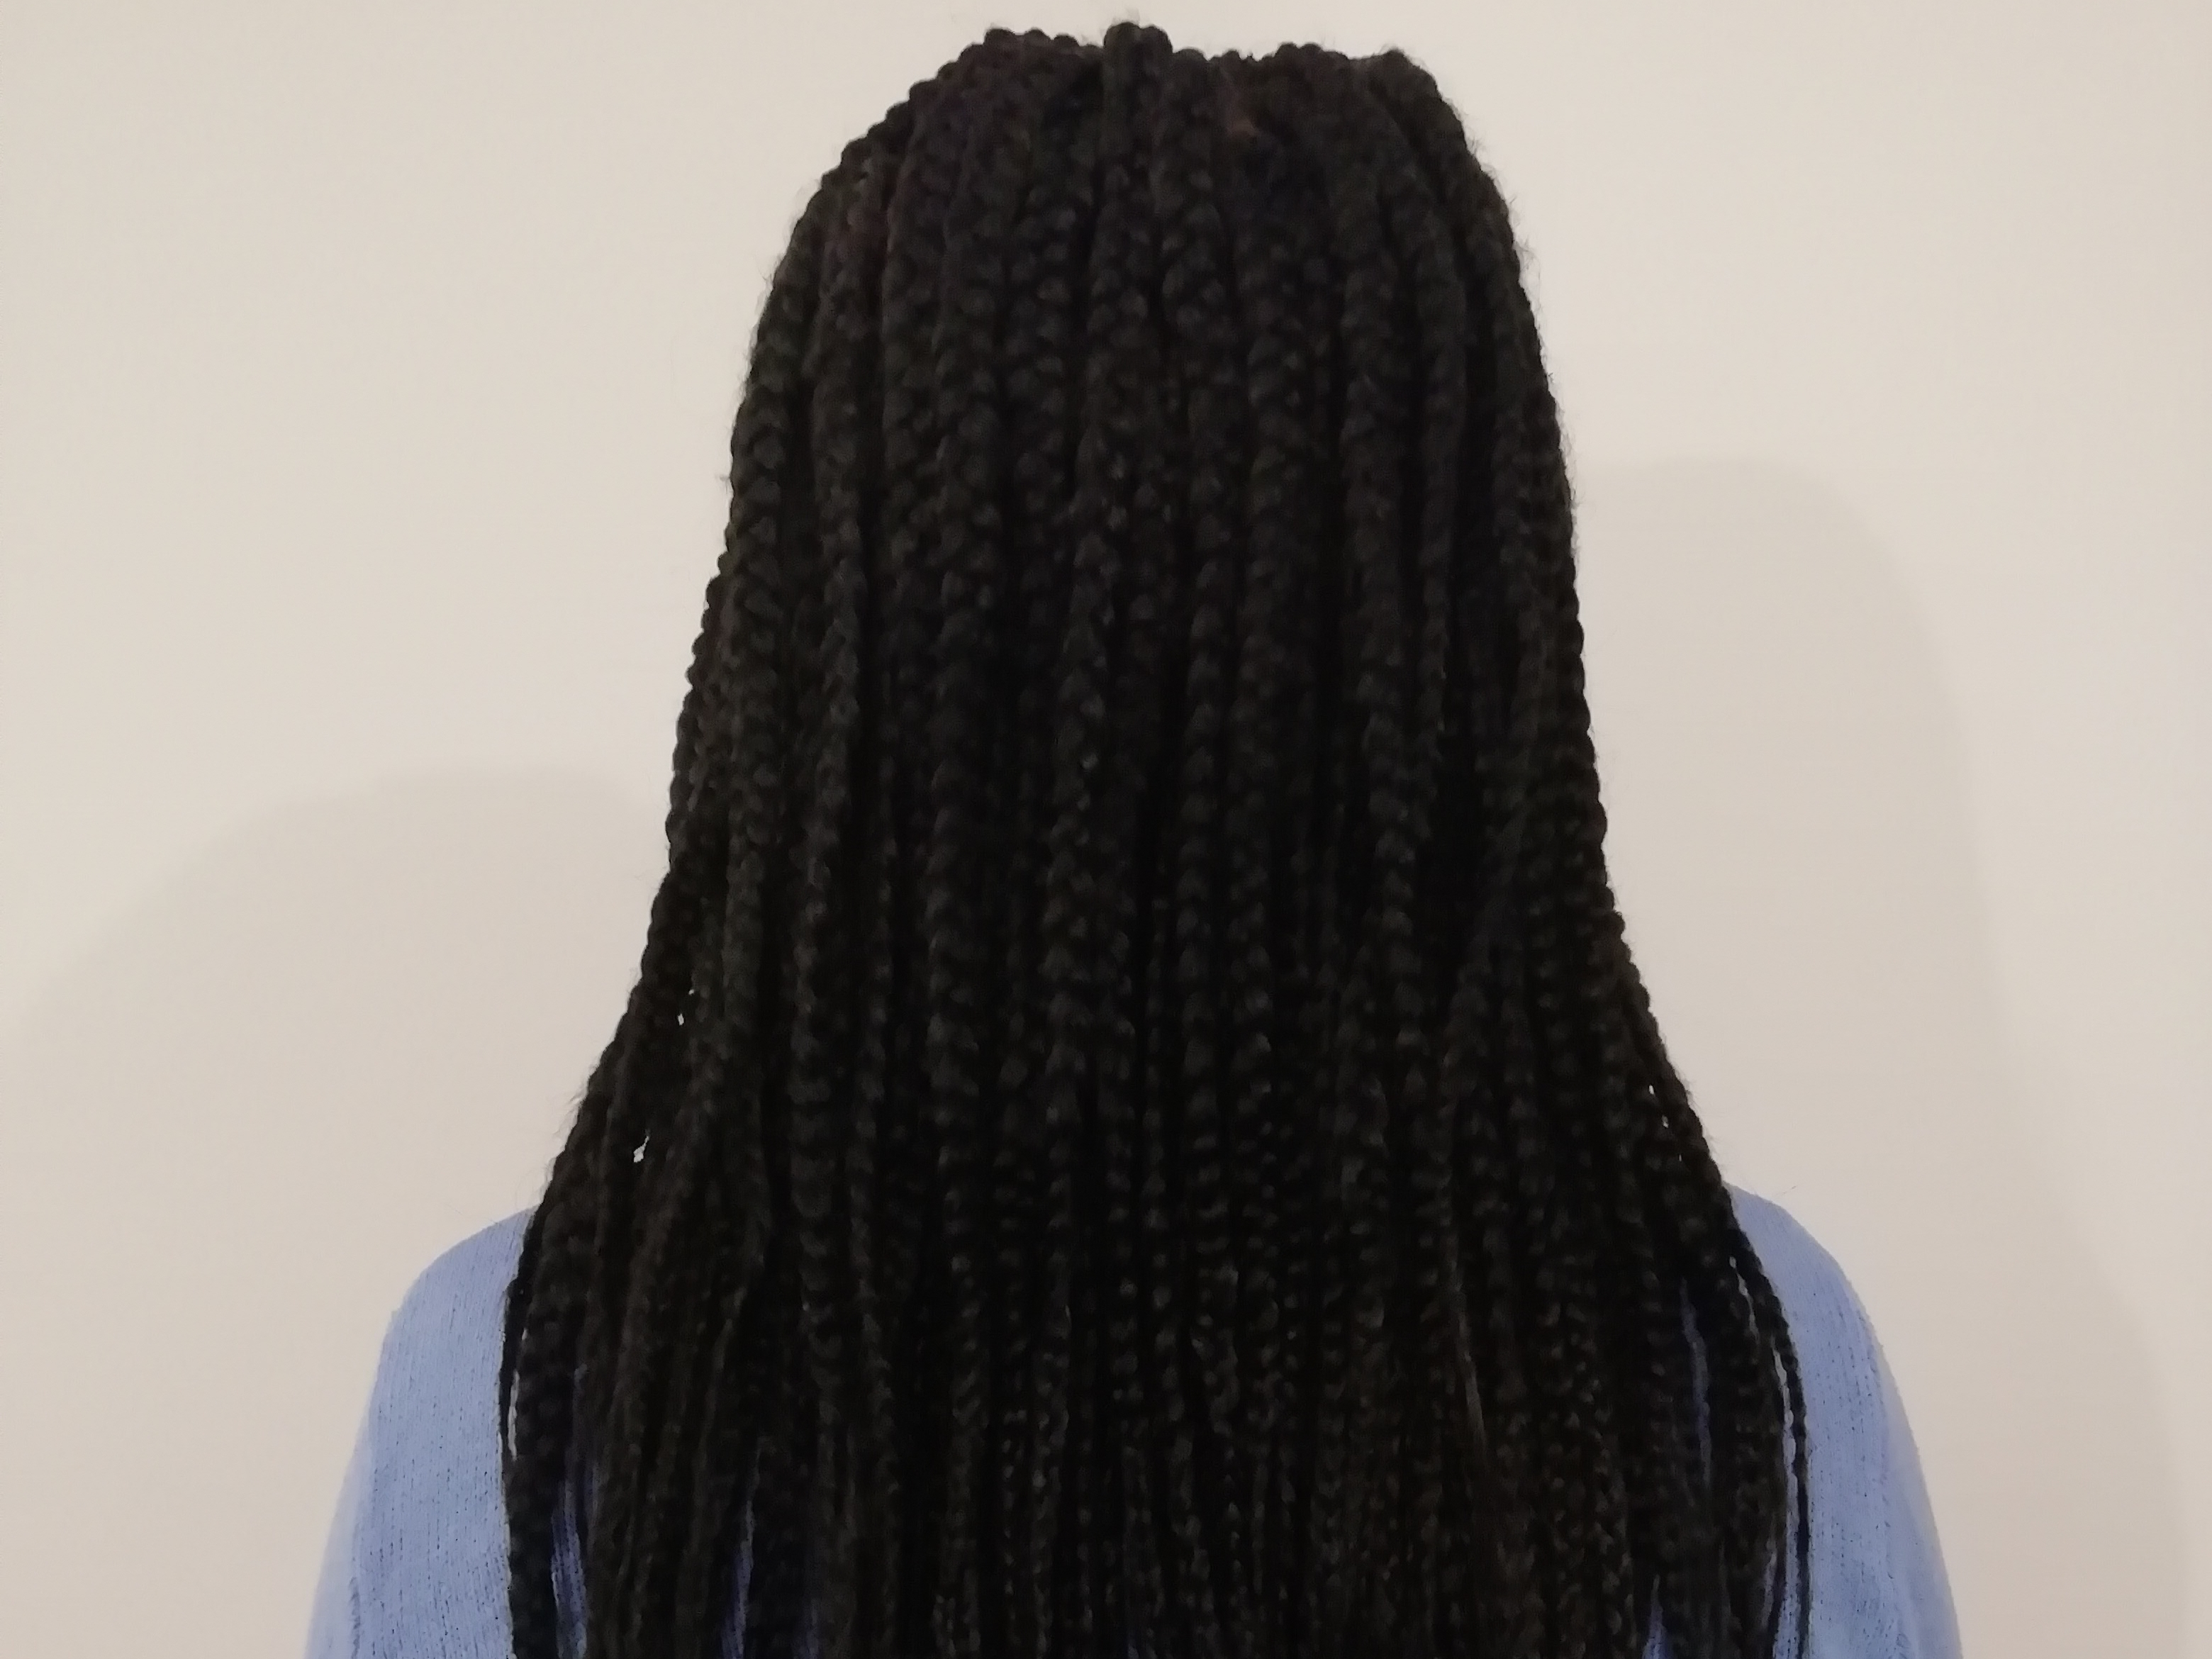 salon de coiffure afro tresse tresses box braids crochet braids vanilles tissages paris 75 77 78 91 92 93 94 95 UBIDNDGE